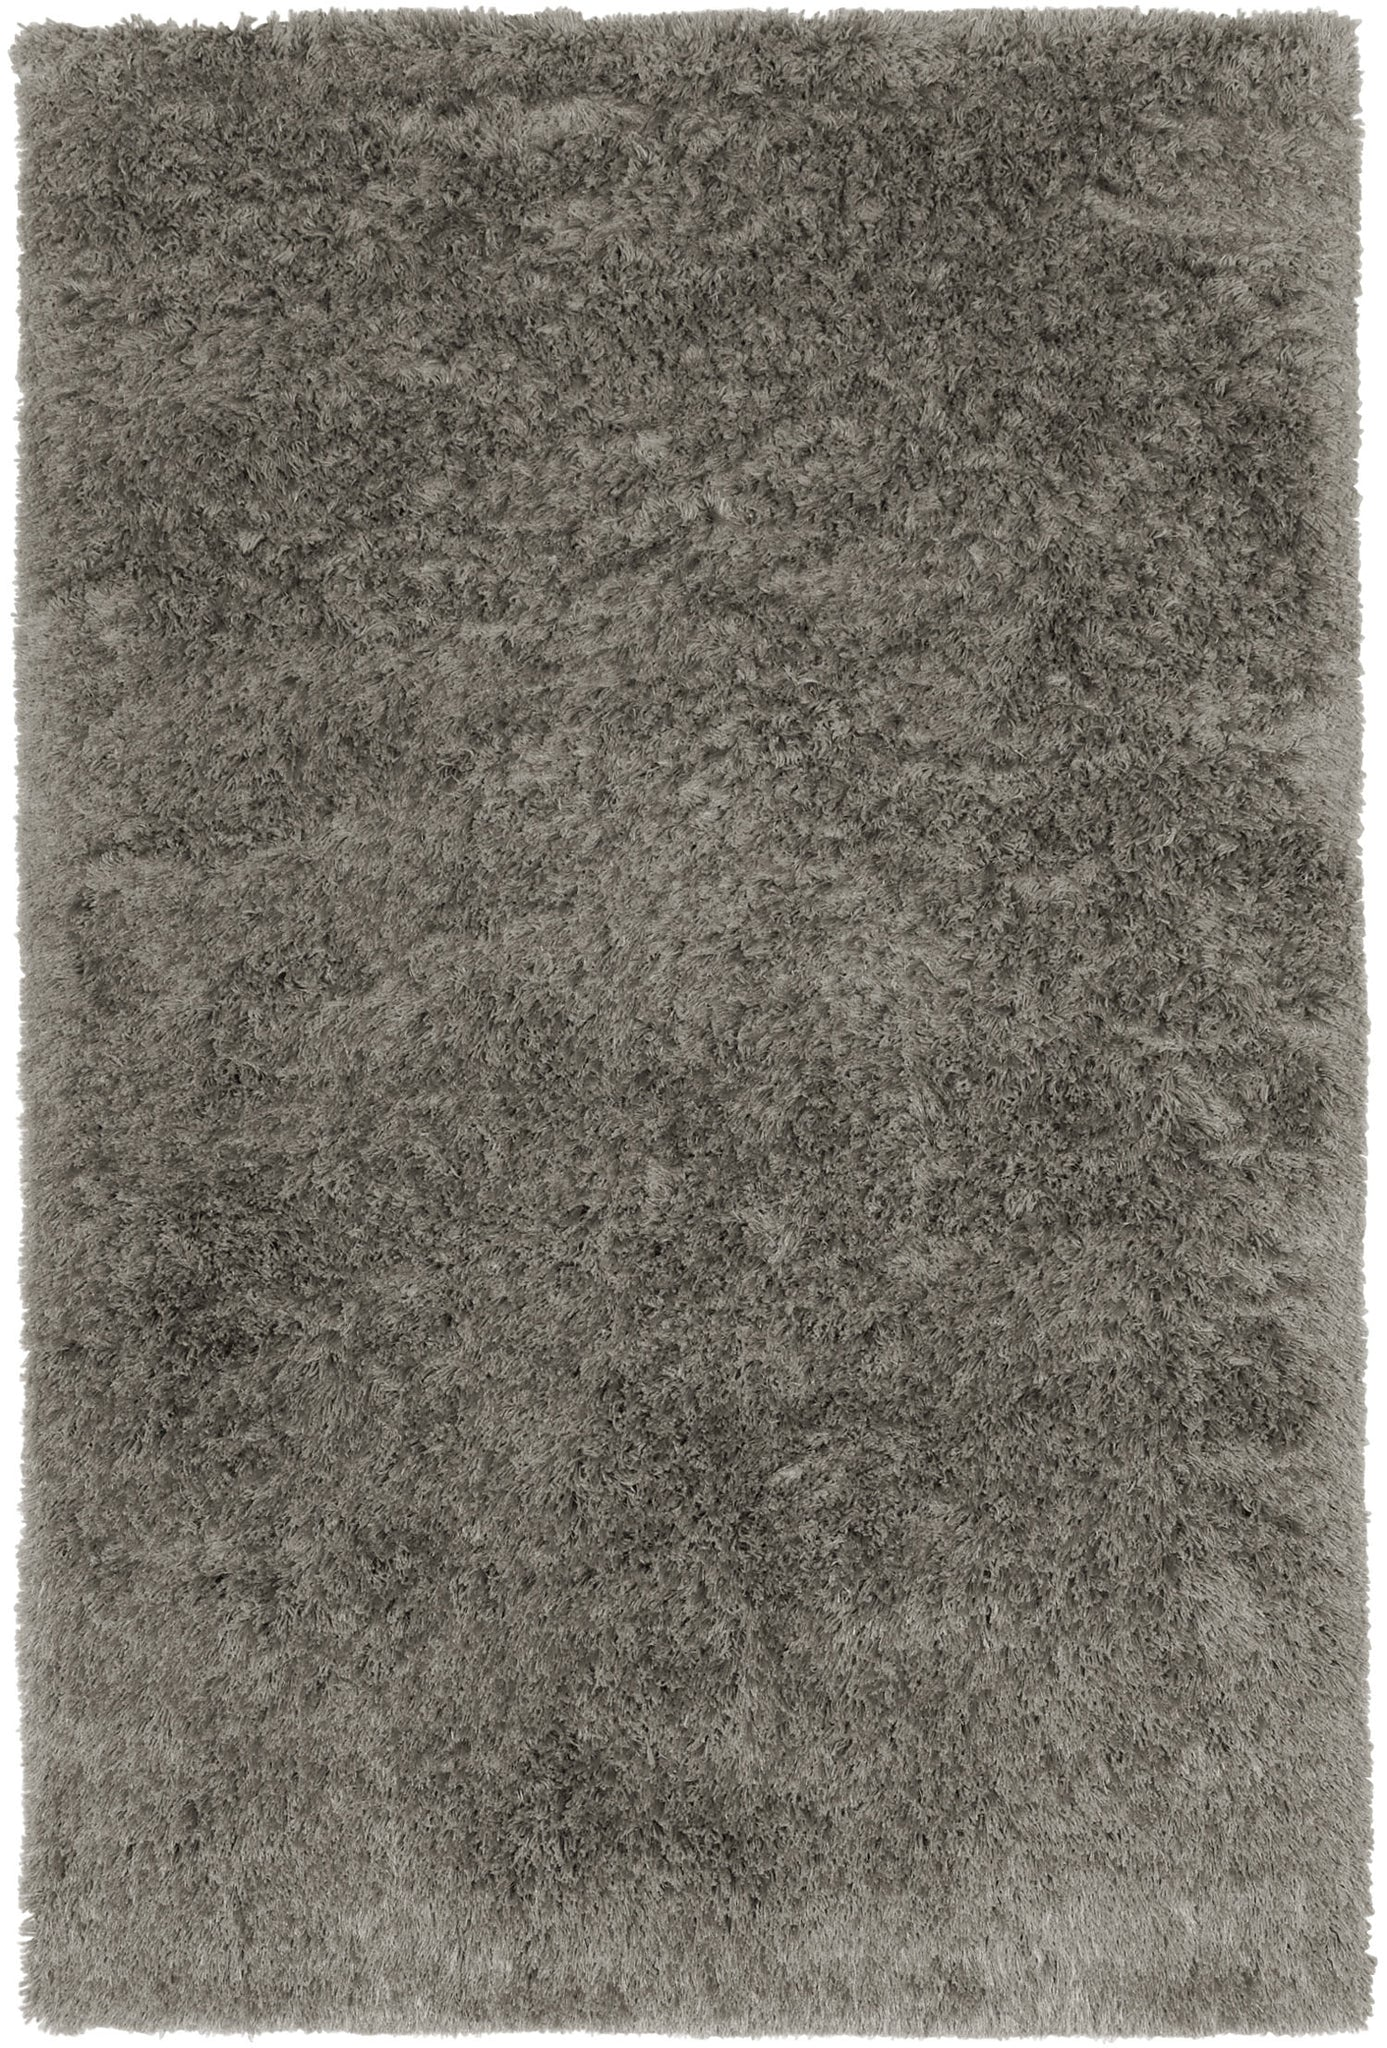 Capel Trolley Line 3250 Grey 300 Area Rug main image